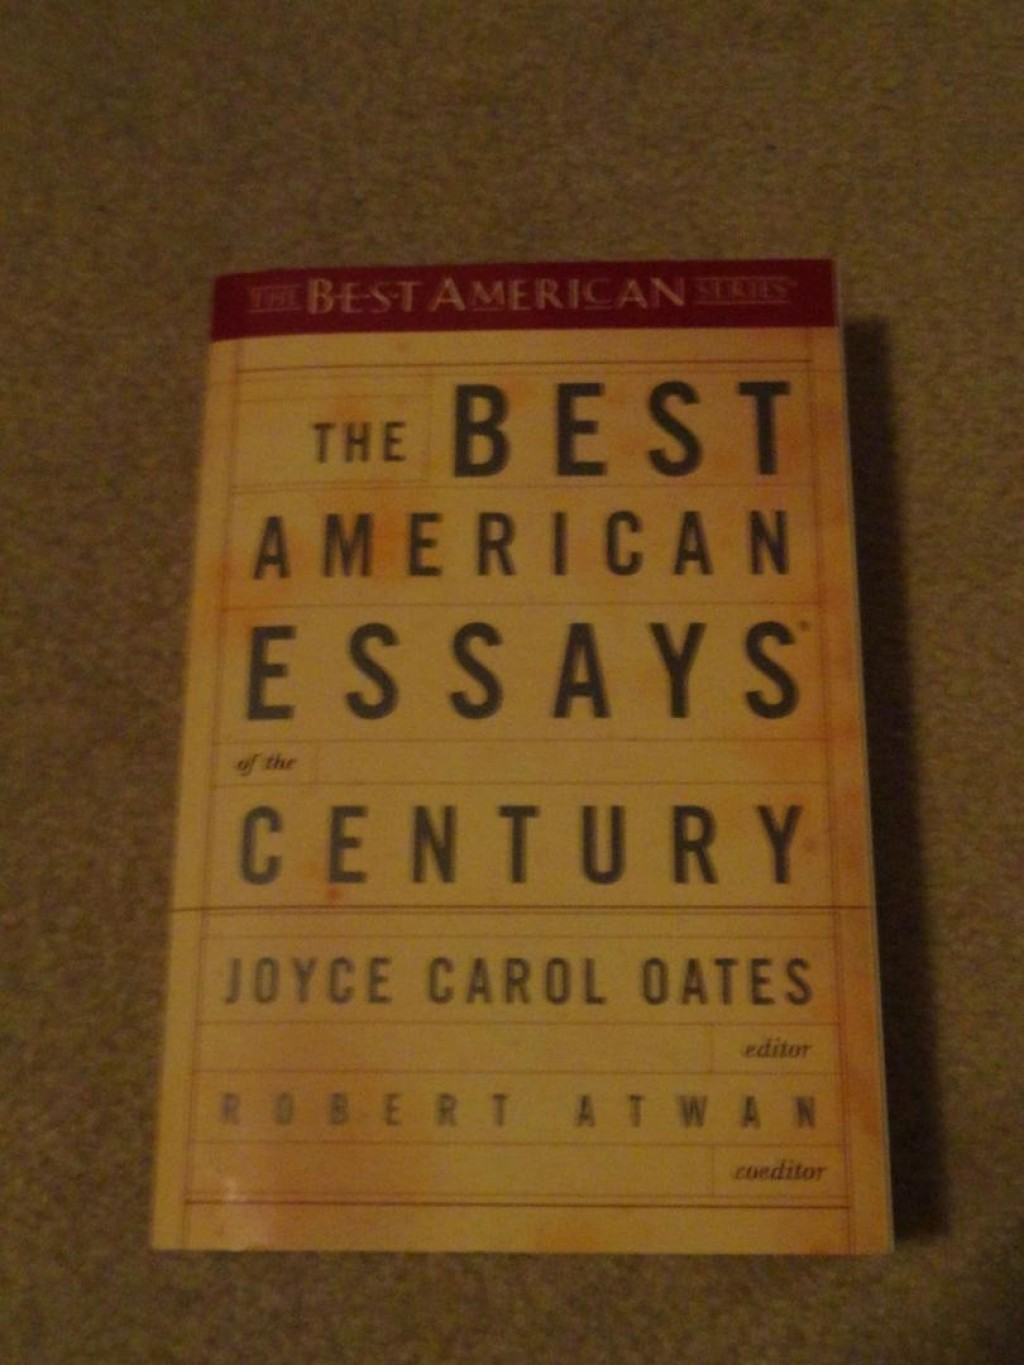 007 The Best American Essays Of Century Essay Example 1 997b8cd7358e6230fa01ed6b061067a8 Imposing Contents Summaries Large